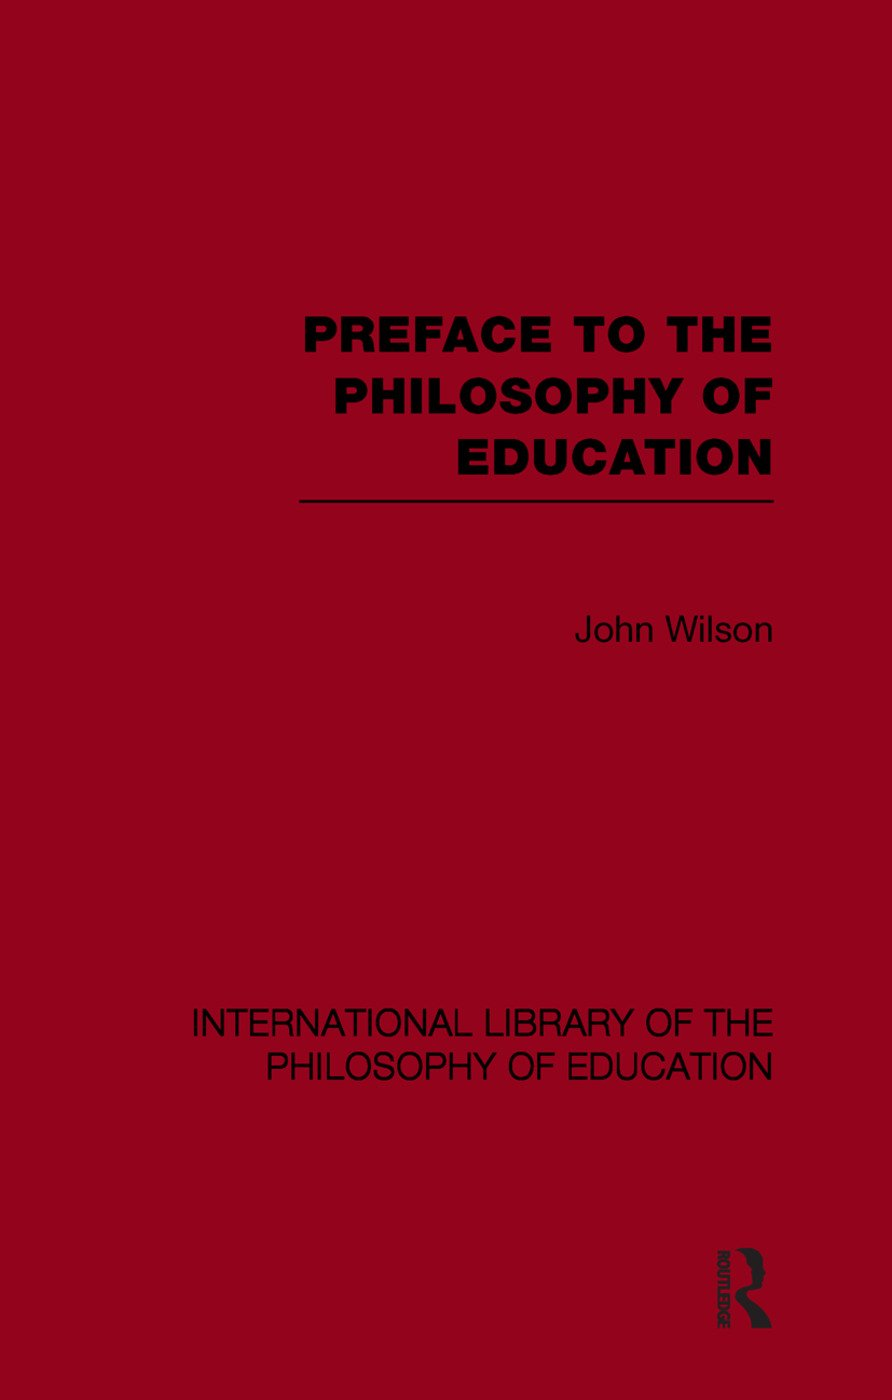 Preface to the philosophy of education (International Library of the Philosophy of Education Volume 24)